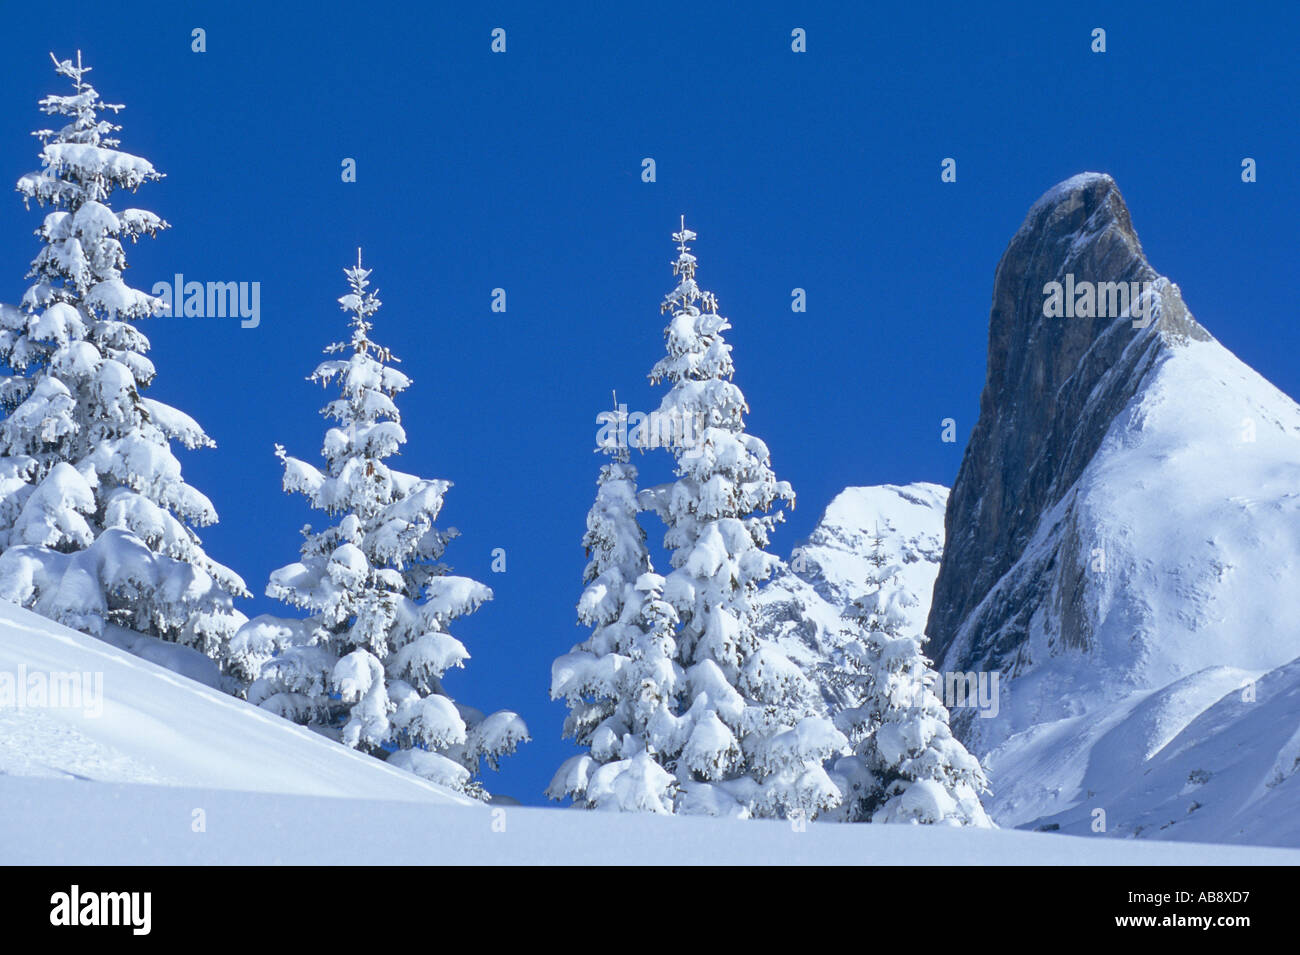 snowy landscape, snow covered spruces in the front, mountain tops in the back, France, Rhne-Alpes, National Park - Stock Image